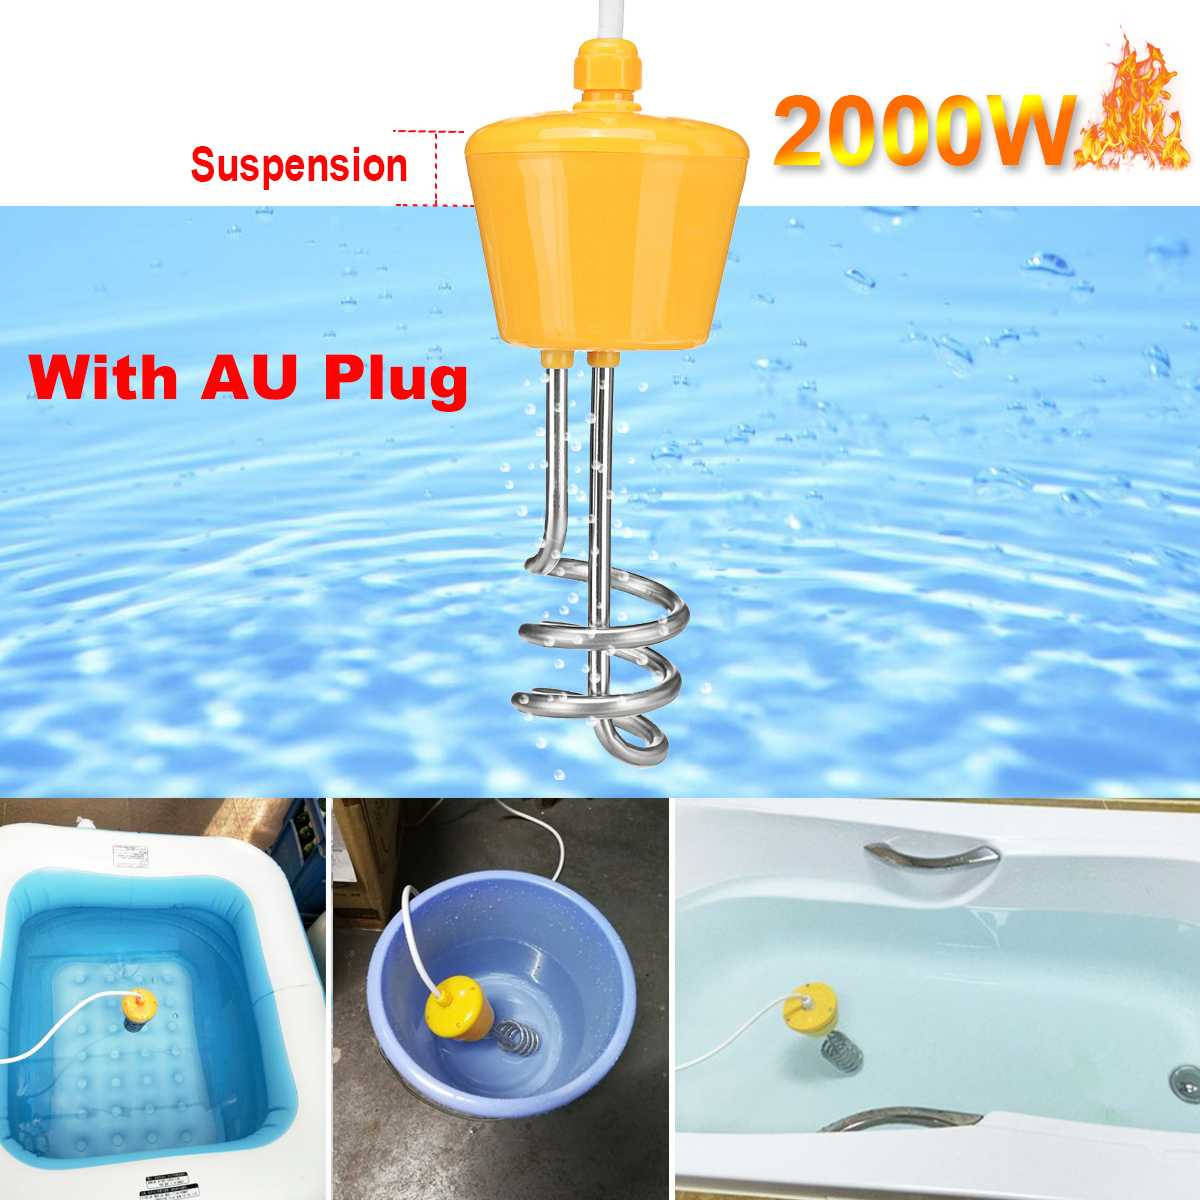 2000W 220V Portable Suspension Stainless Steel Electric Floating Immersion Heater Boiler Water Heating Element For Bathroom Home2000W 220V Portable Suspension Stainless Steel Electric Floating Immersion Heater Boiler Water Heating Element For Bathroom Home